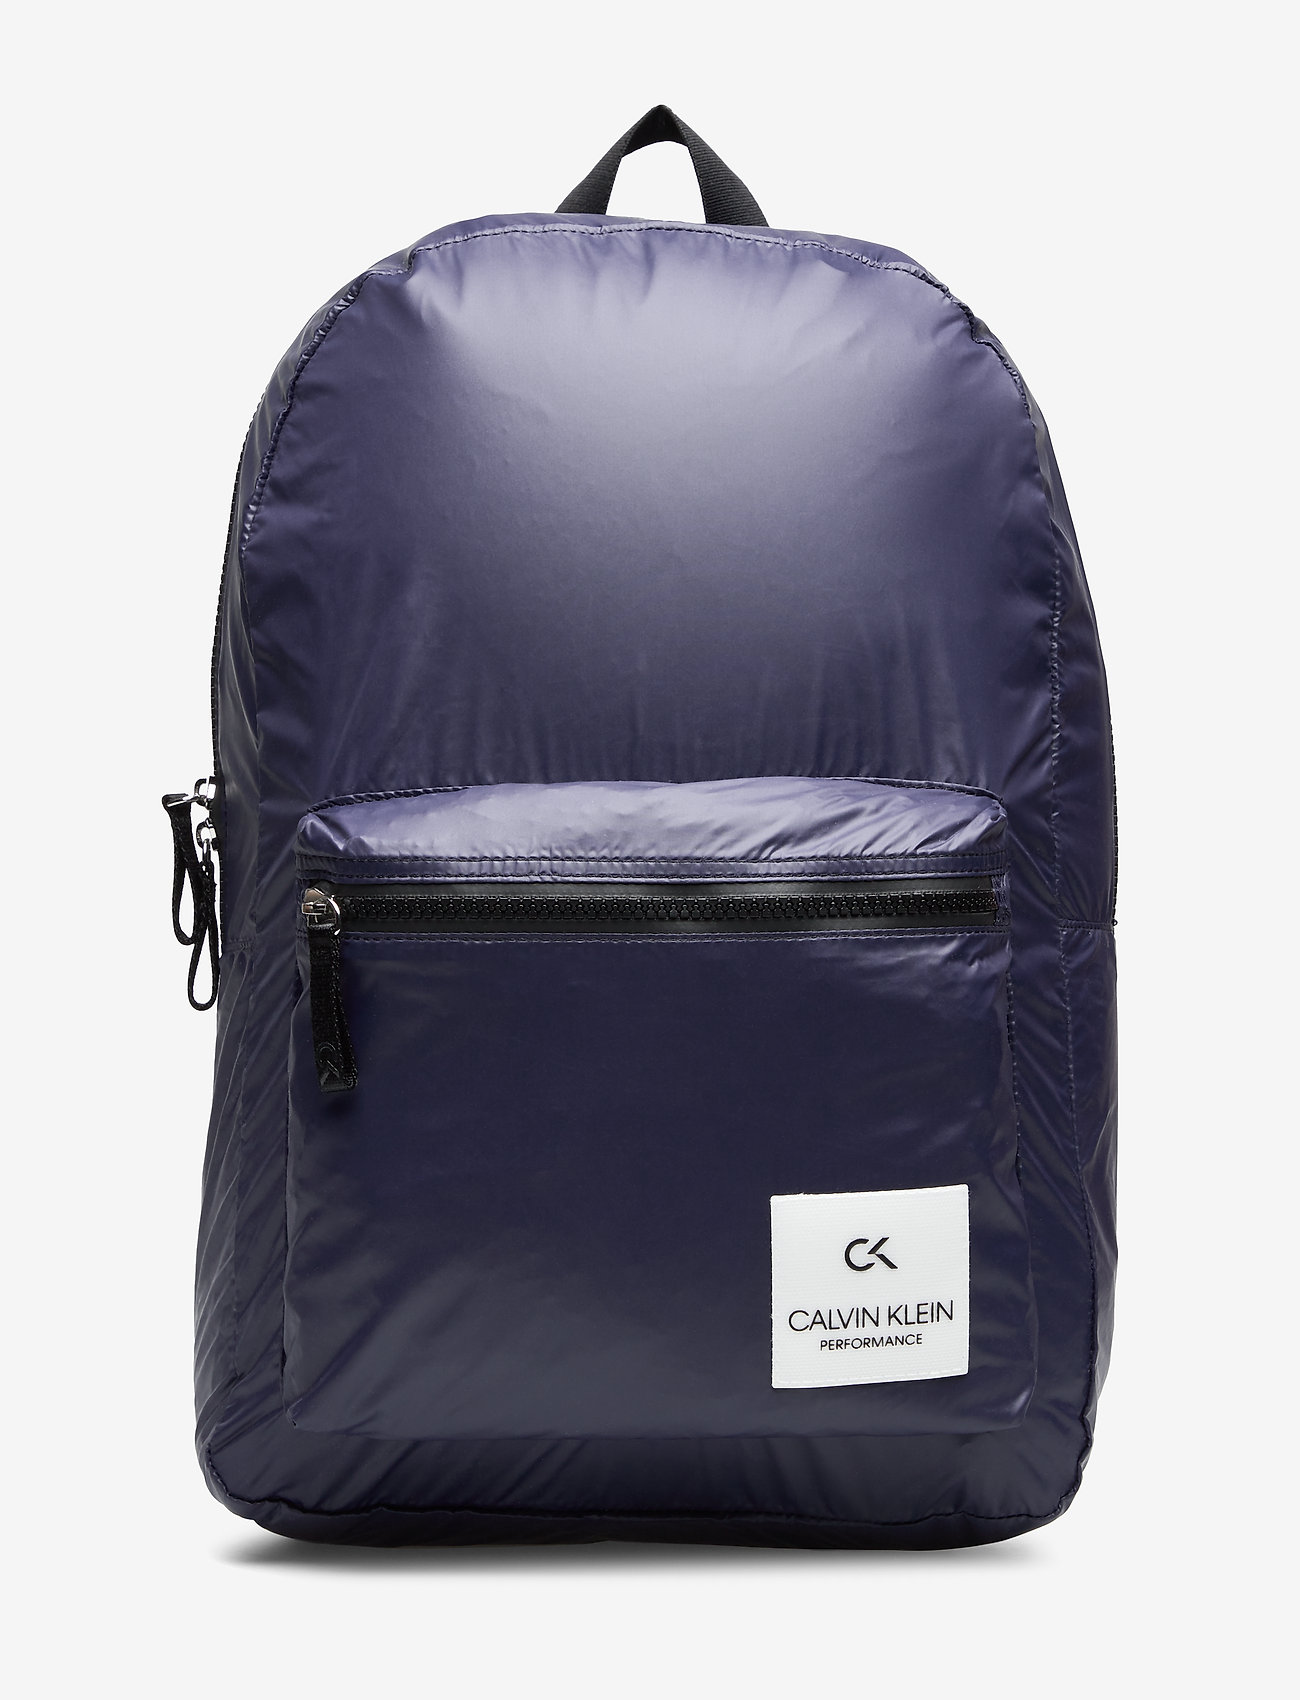 Calvin Klein Performance - ZIP BACKPACK - trainingstassen - night sky - 0